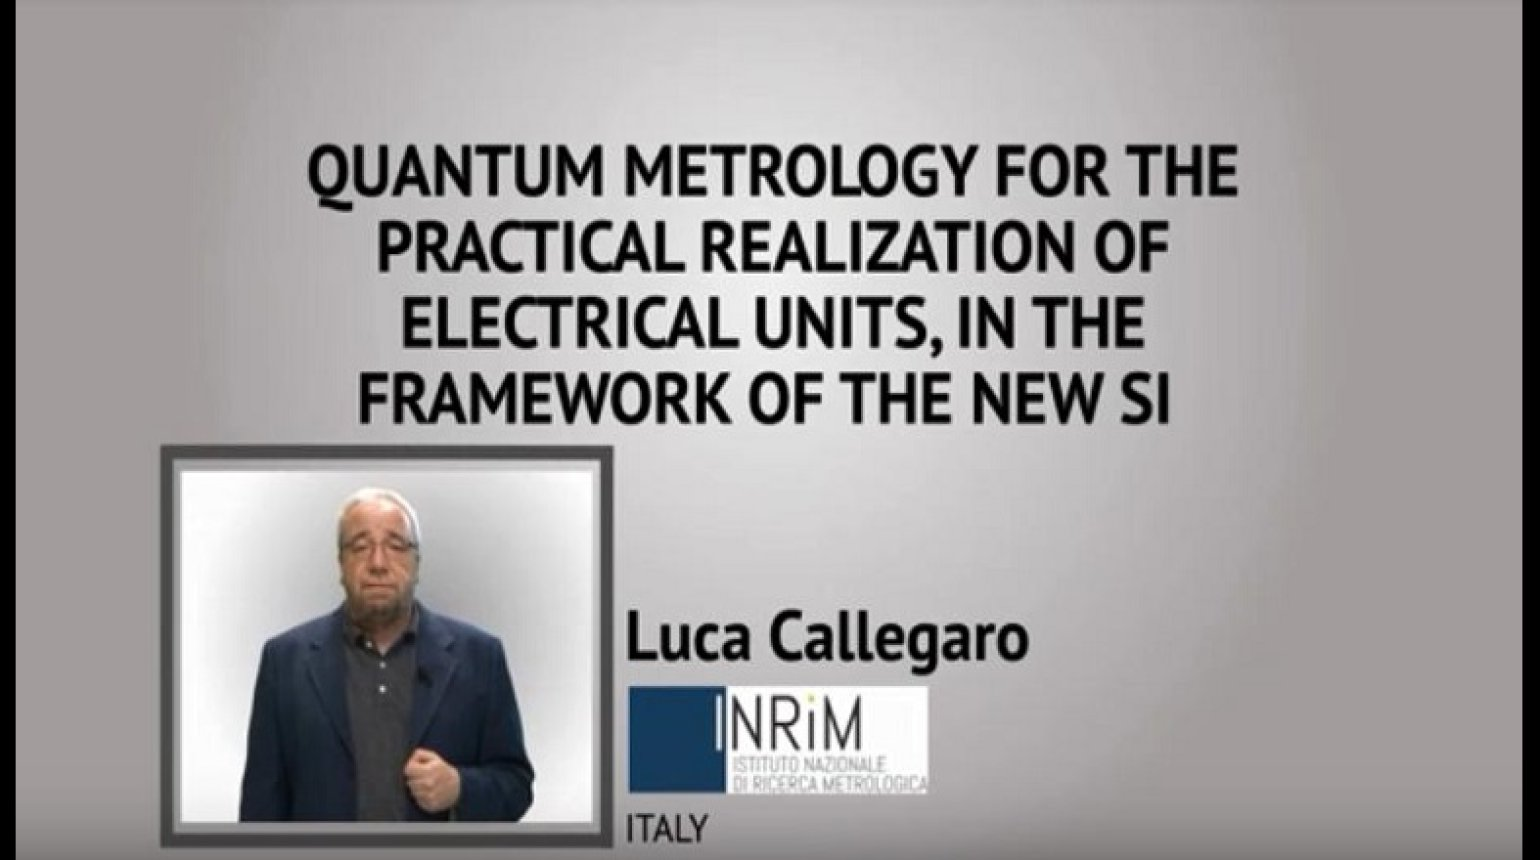 Quantum Metrology for the Practical Realization of Electrical Units, in the Framework of the New SI